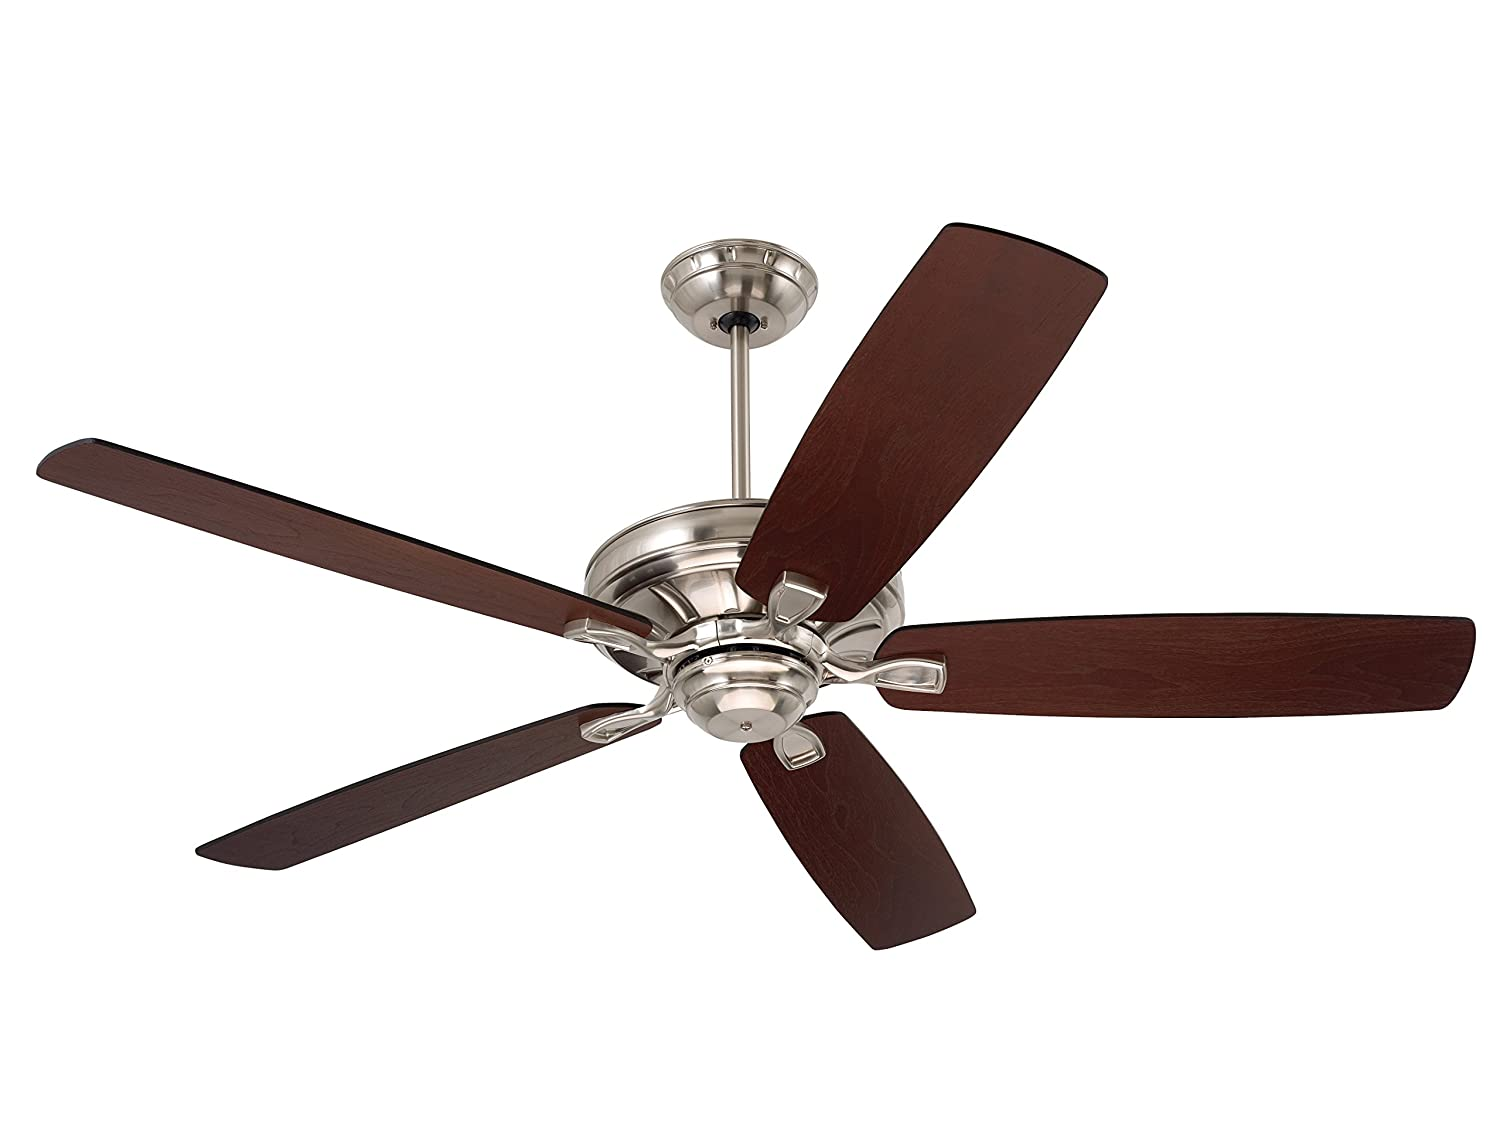 Com Emerson Ceiling Fans Cf784bs Carrera 60 Inch Indoor Fan Light Kit Adaptable Brushed Steel Finish Home Improvement